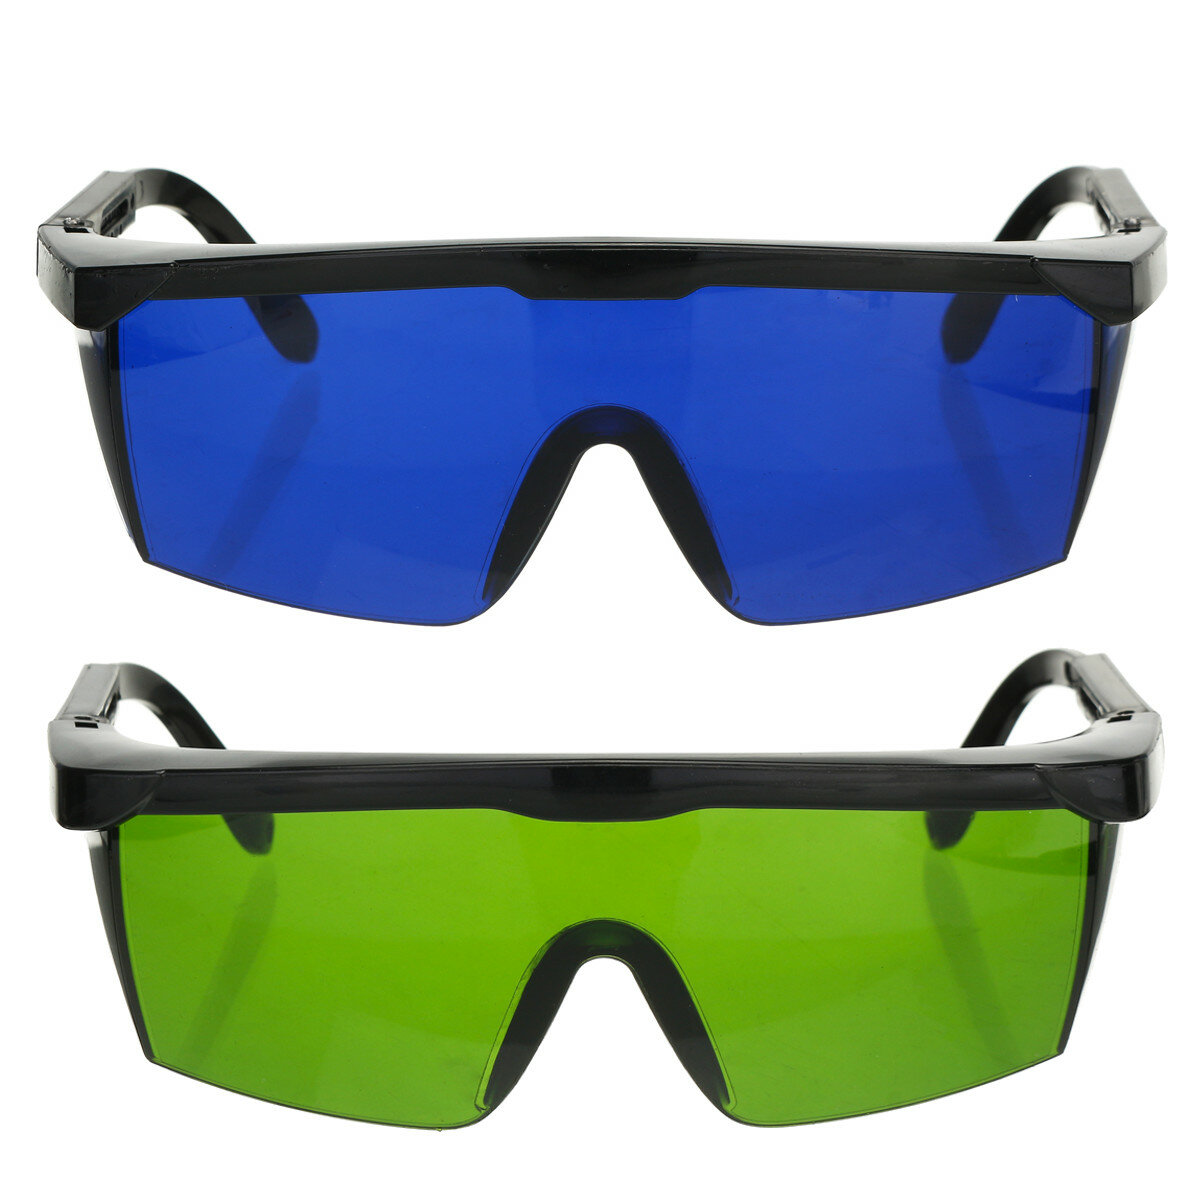 Pro Laser Protection Goggles Protective Safety Glasses IPL OD+4D 190nm-2000nm Laser Goggles